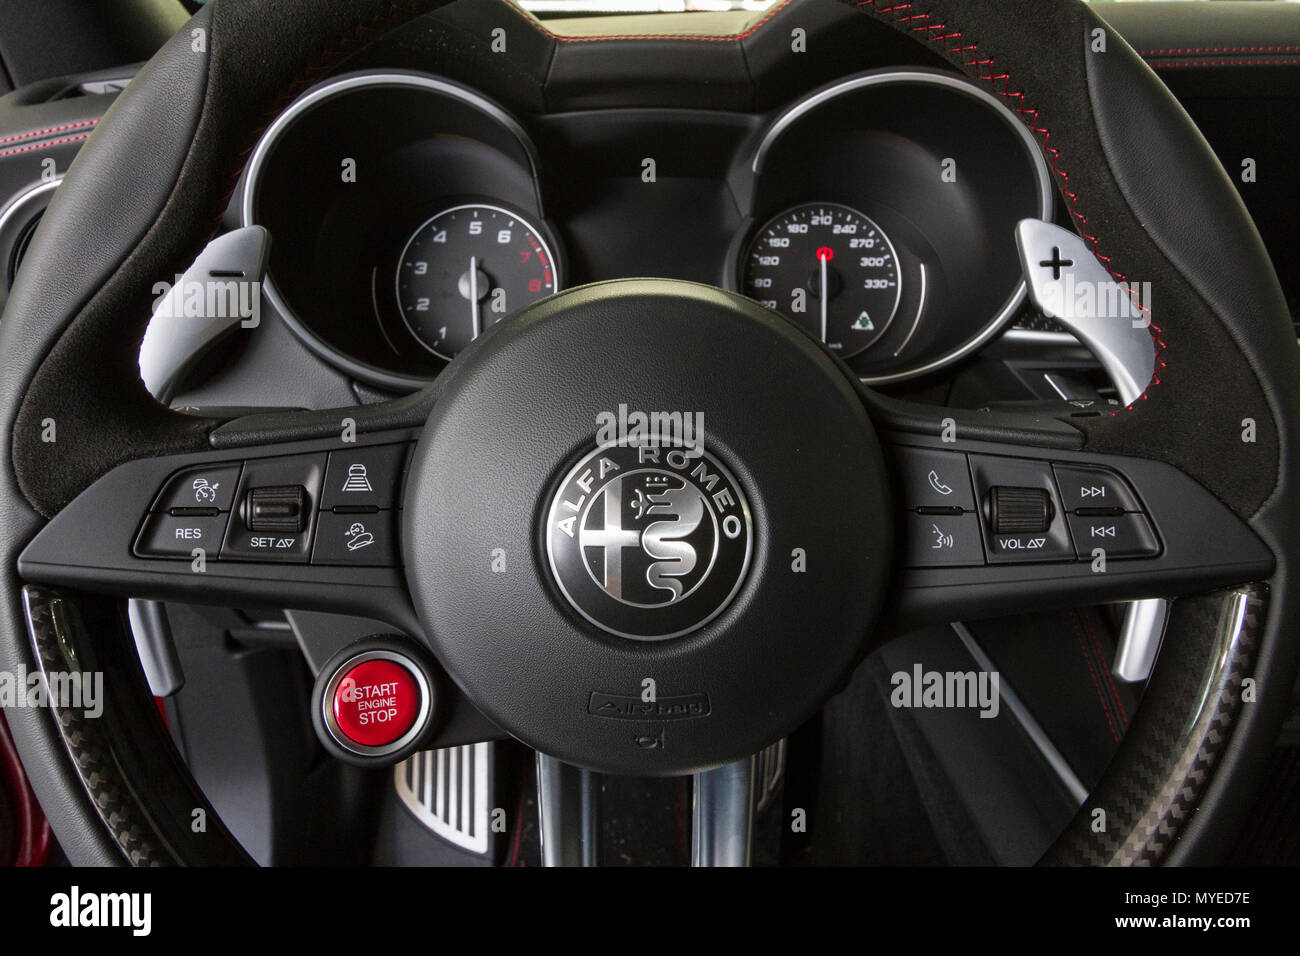 Alfa Steering Wheel Stock Photos Images Romeo Wheels 60s Dashboard And Of Stelvio